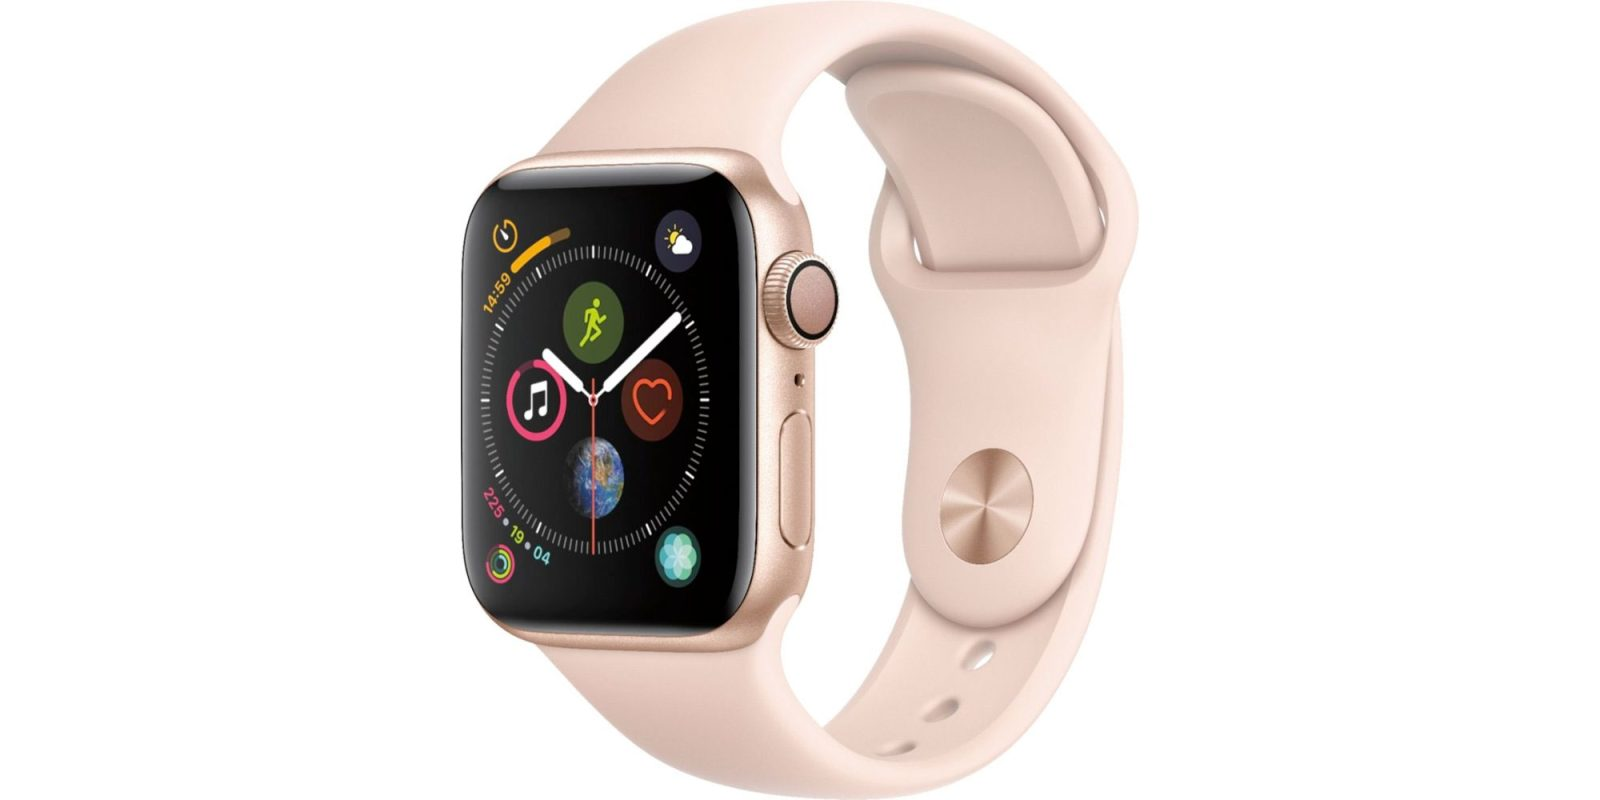 Apple Watch Series 4 plus extra band hits $299 at Best Buy before Black Friday